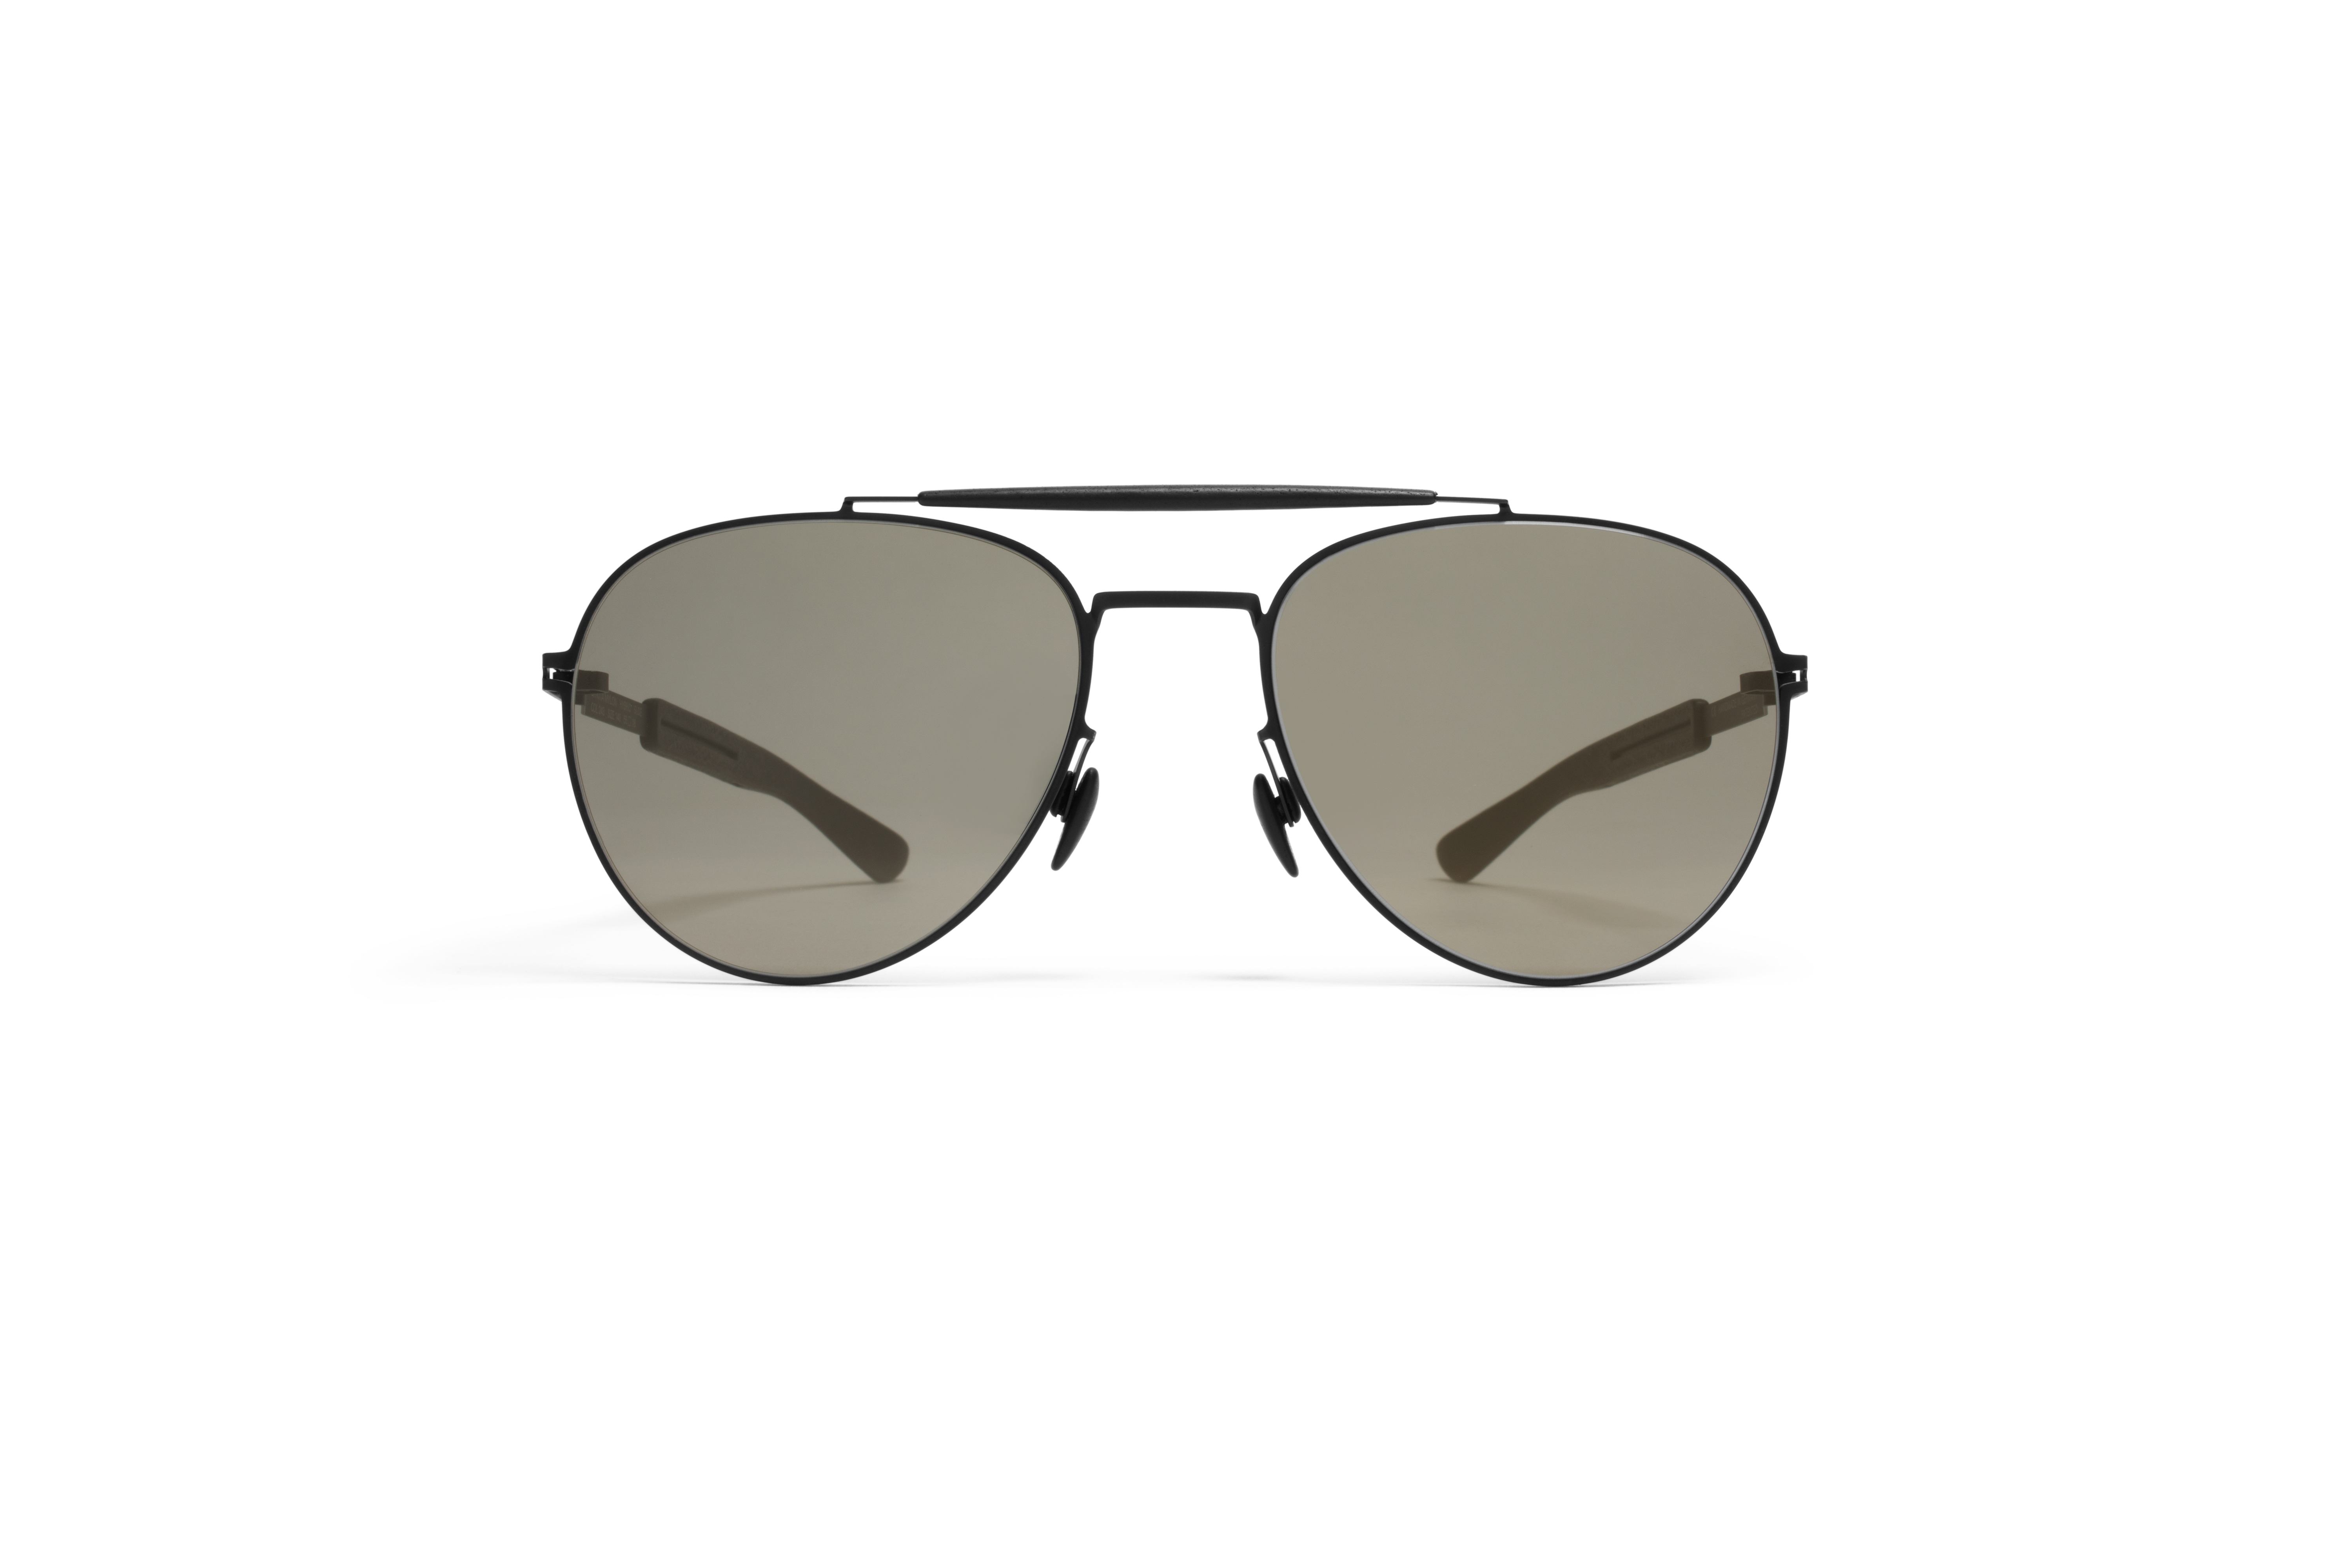 MYKITA Mylon Rx Sloe Mh1 Black Pitch Black Gunmeta5655bf7fab621